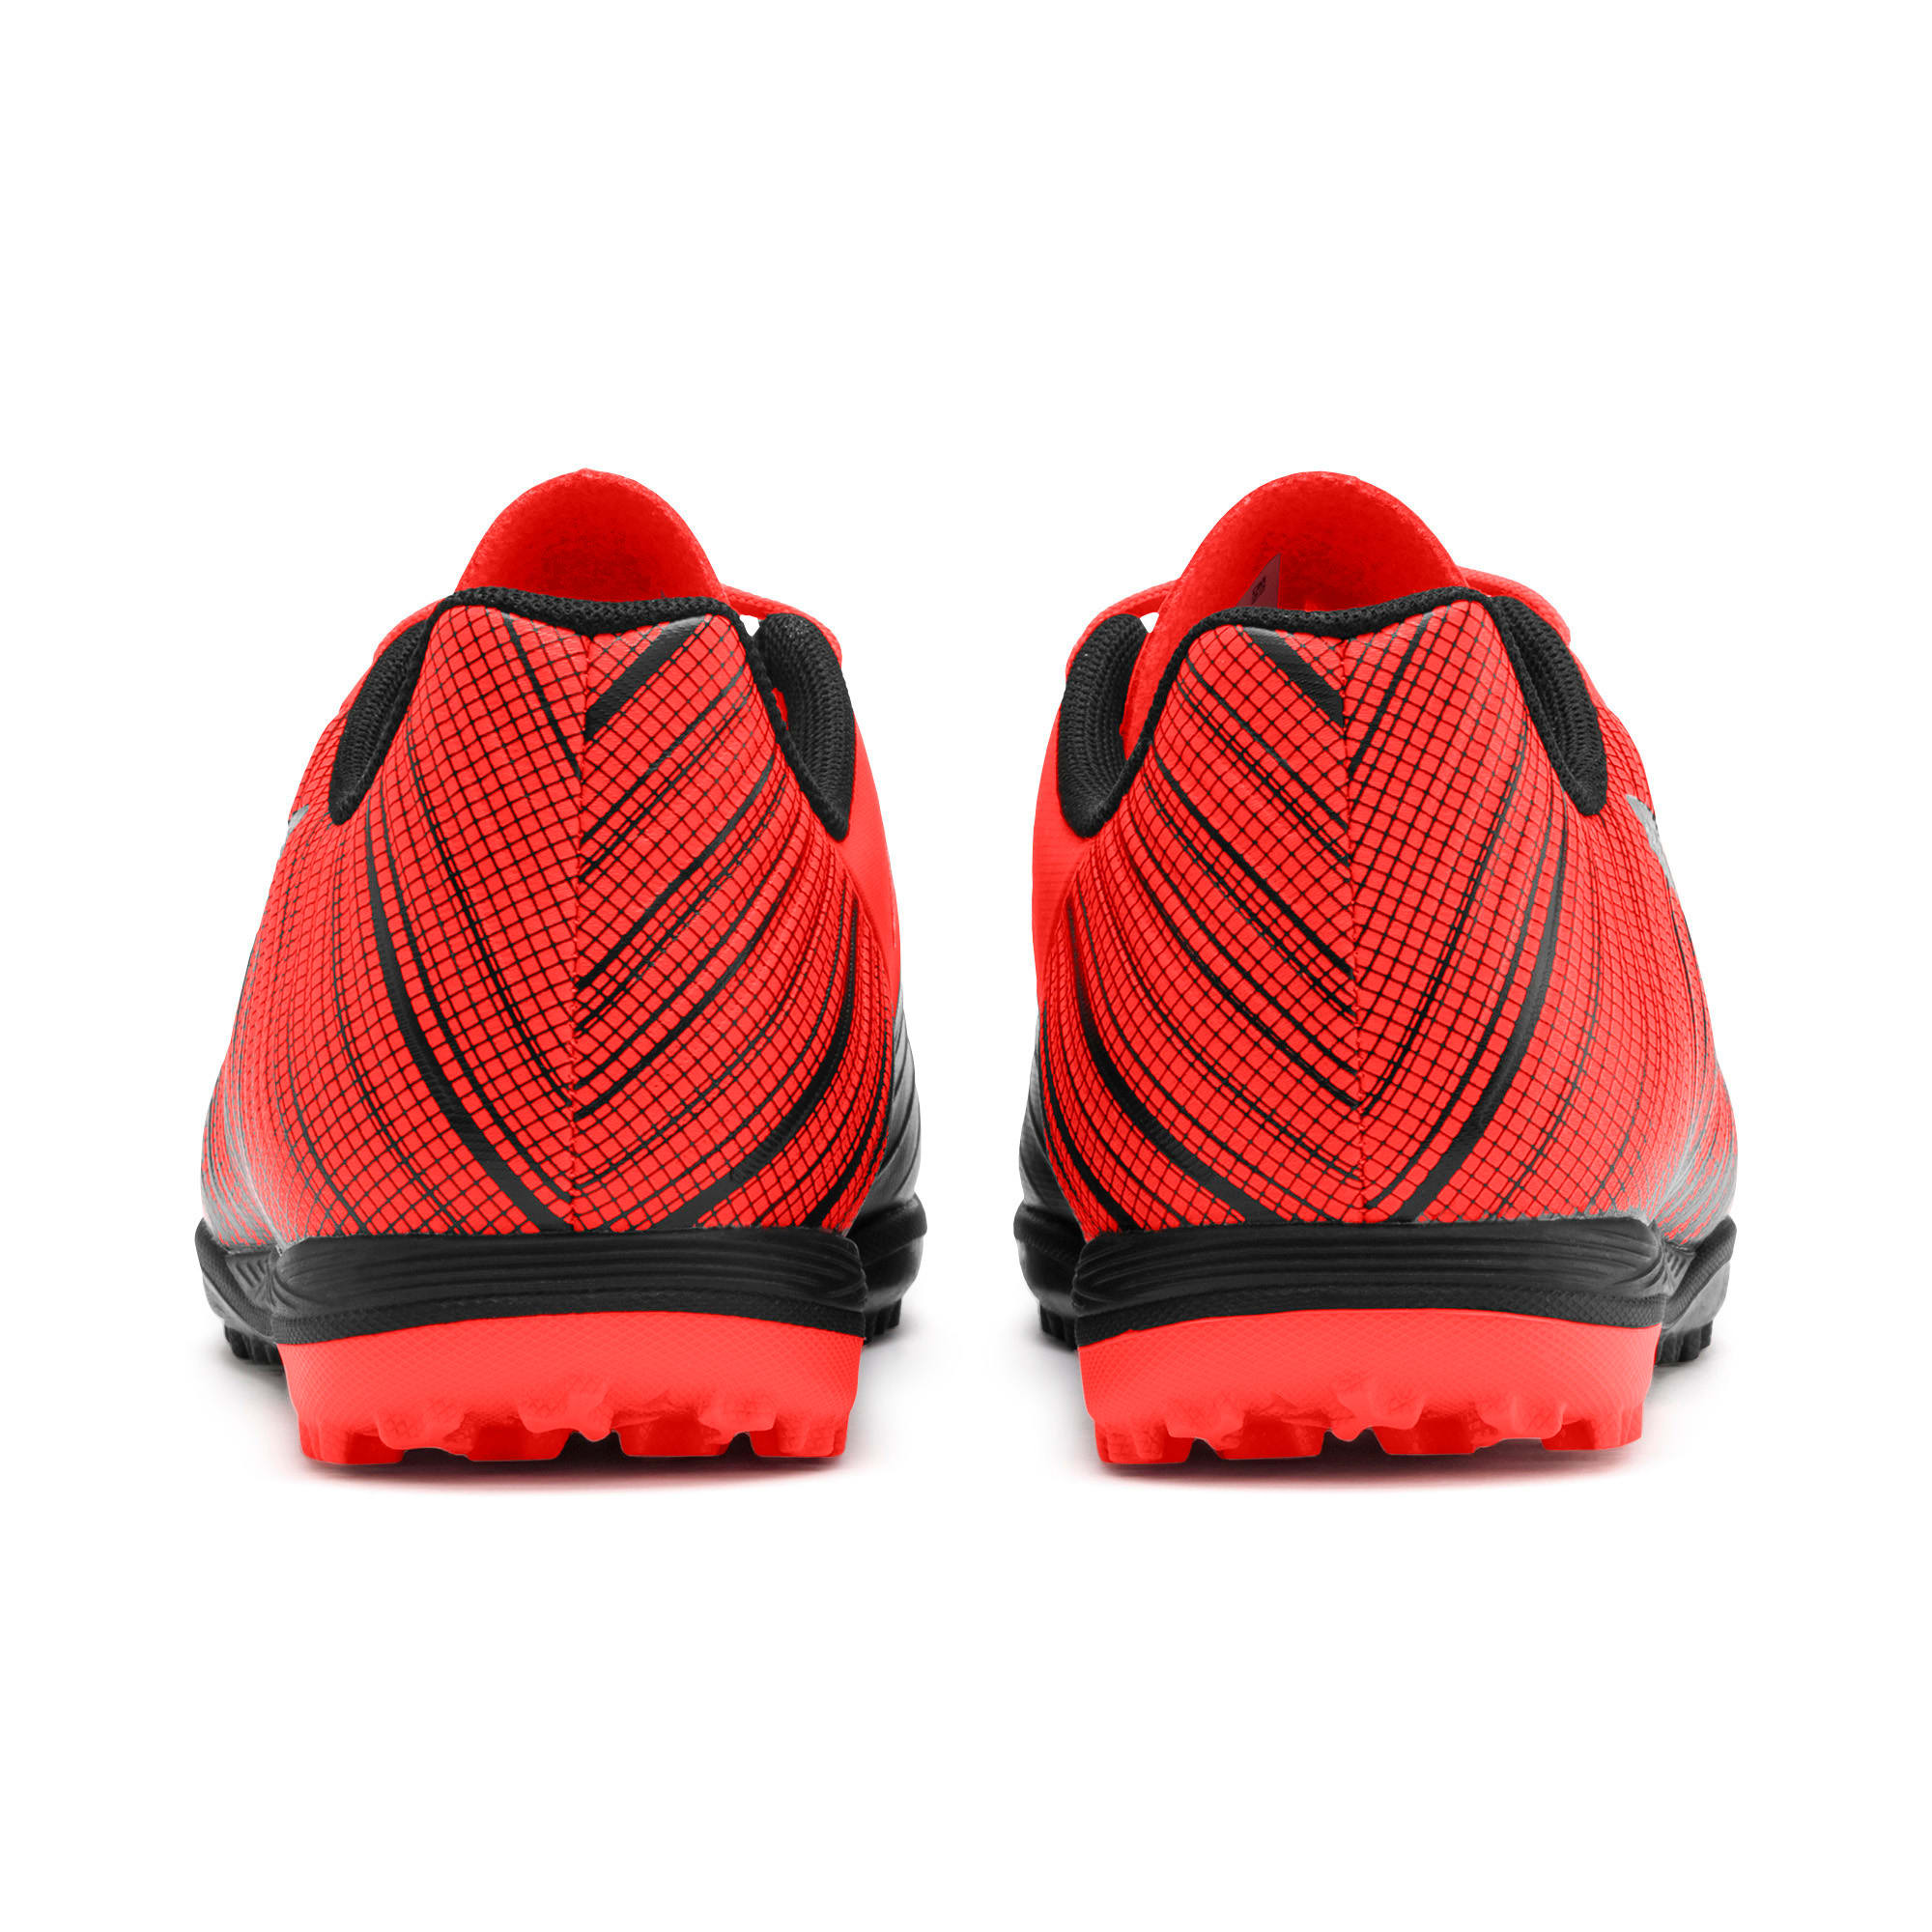 Thumbnail 3 of PUMA ONE 5.4 TT Soccer Shoes JR, Black-Nrgy Red-Aged Silver, medium